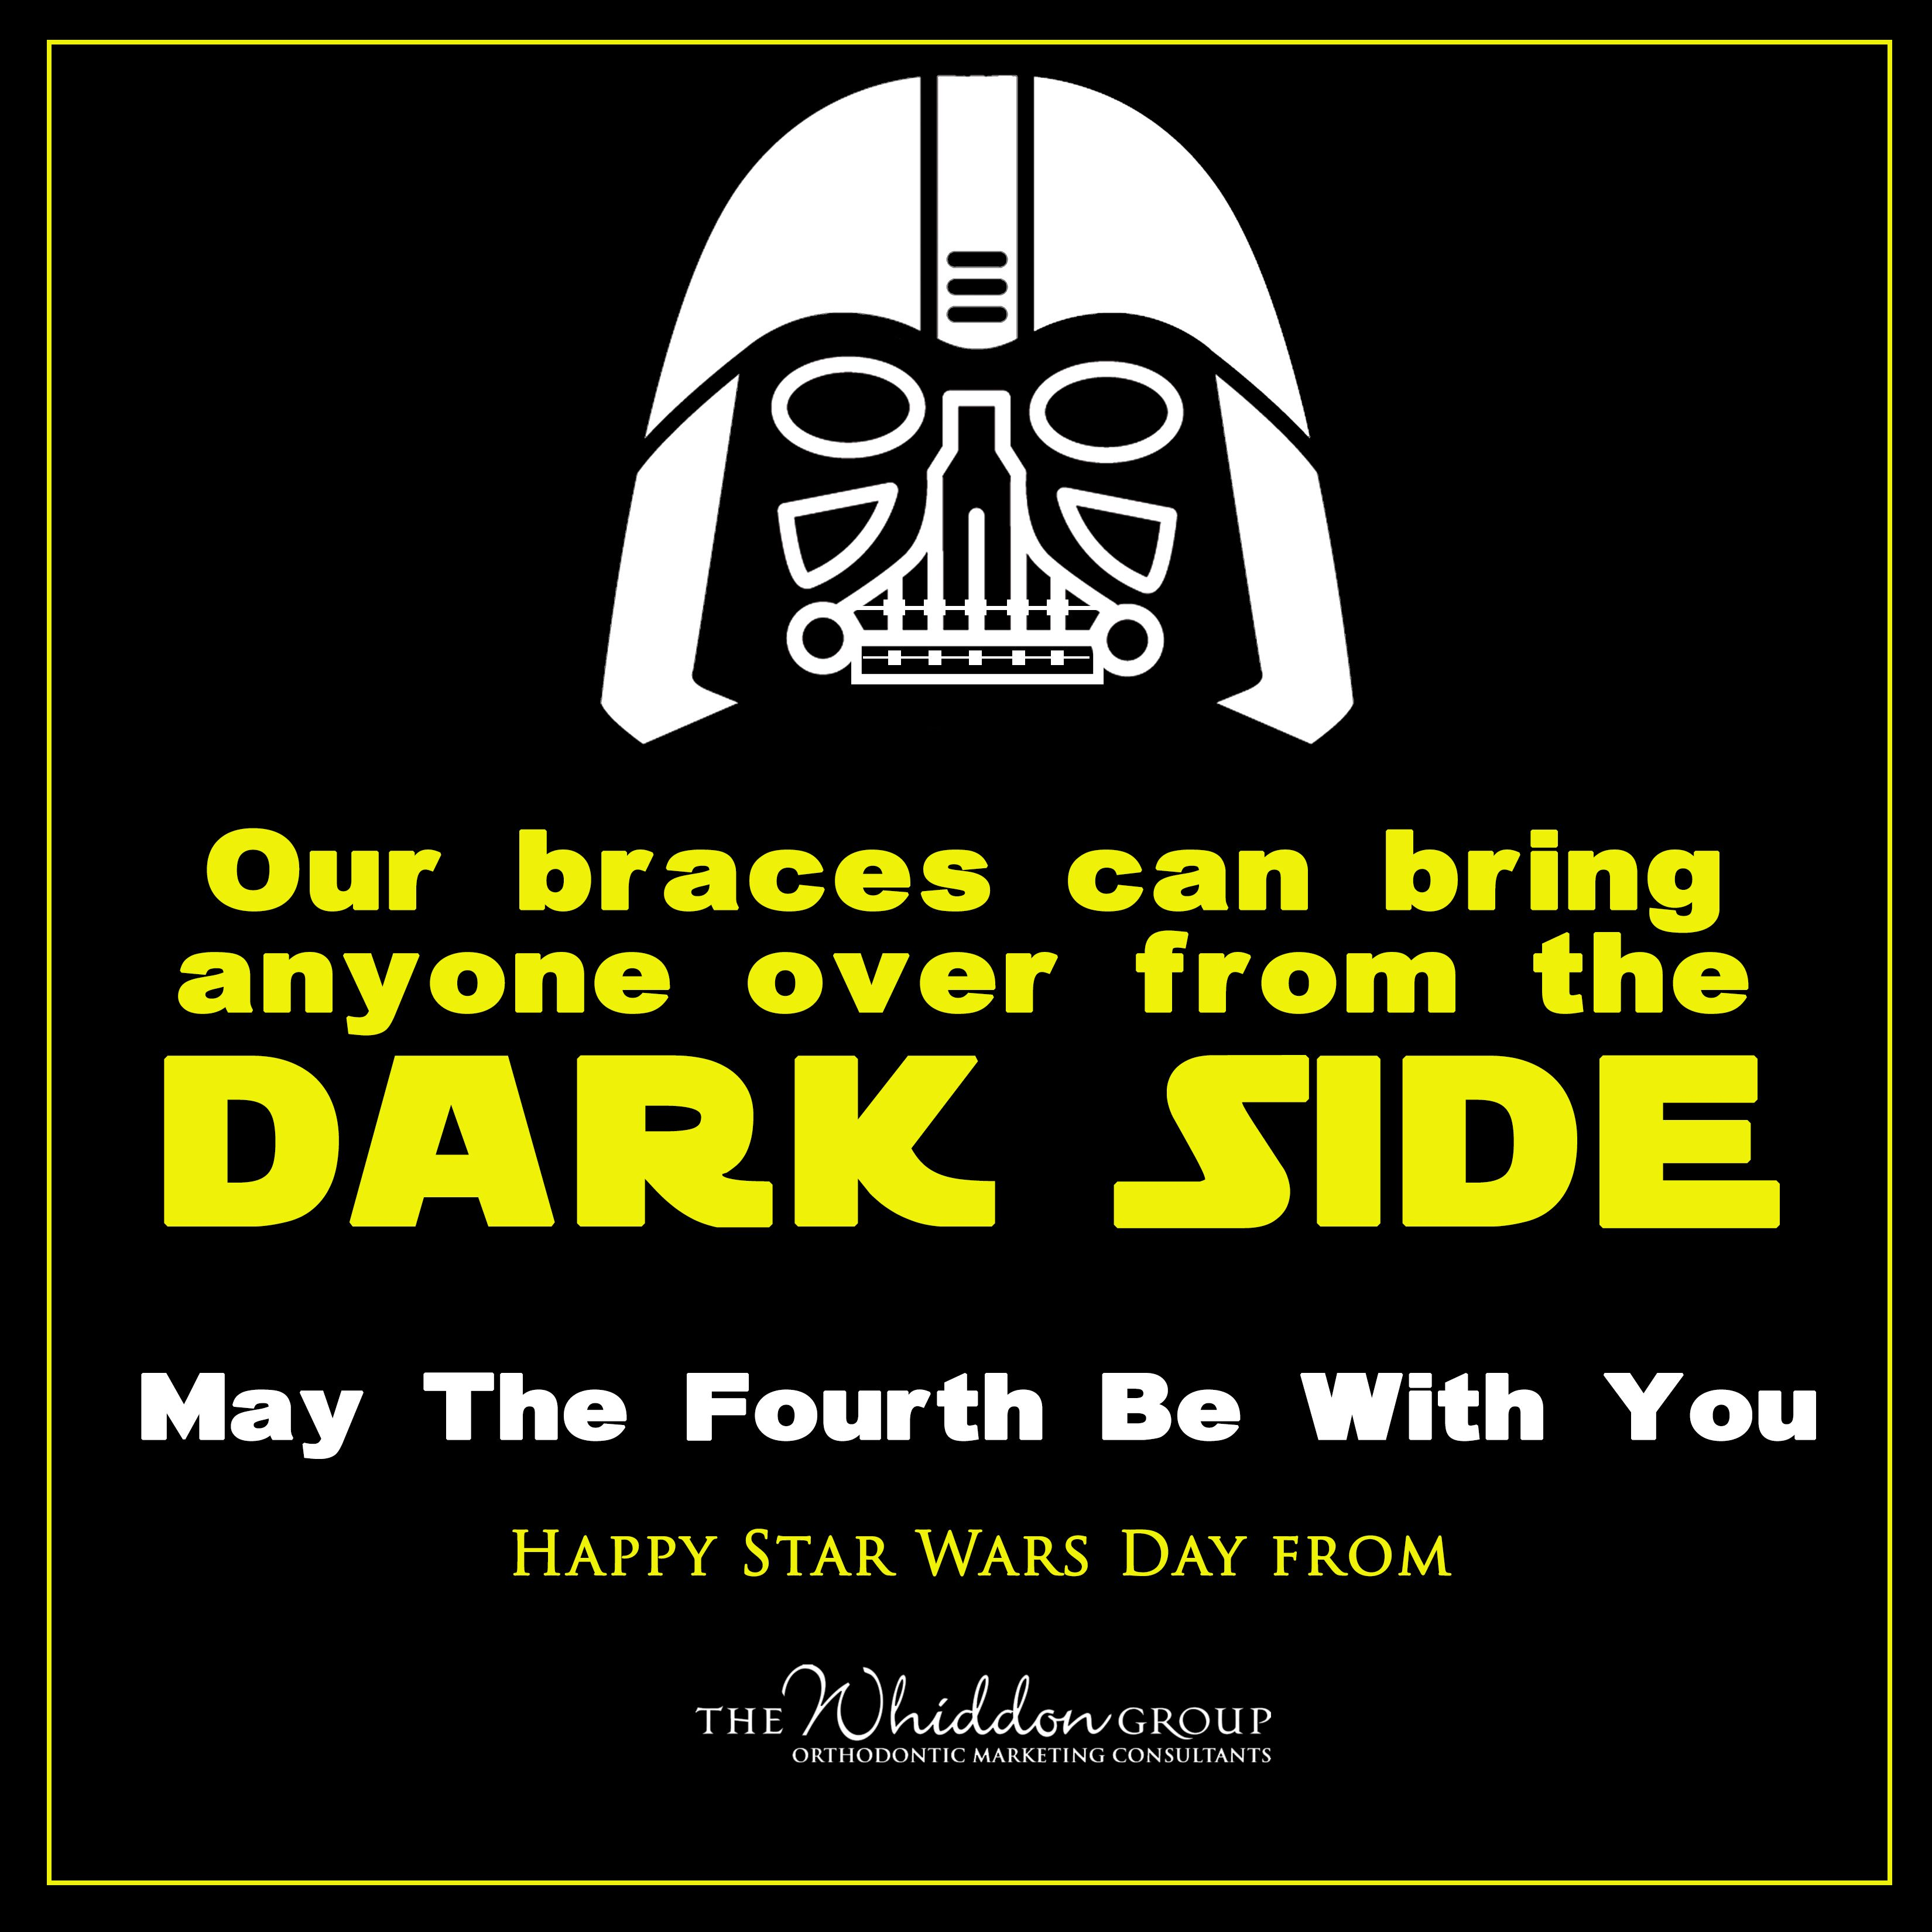 A Little #orthomarketing Humor As We Celebrate May The